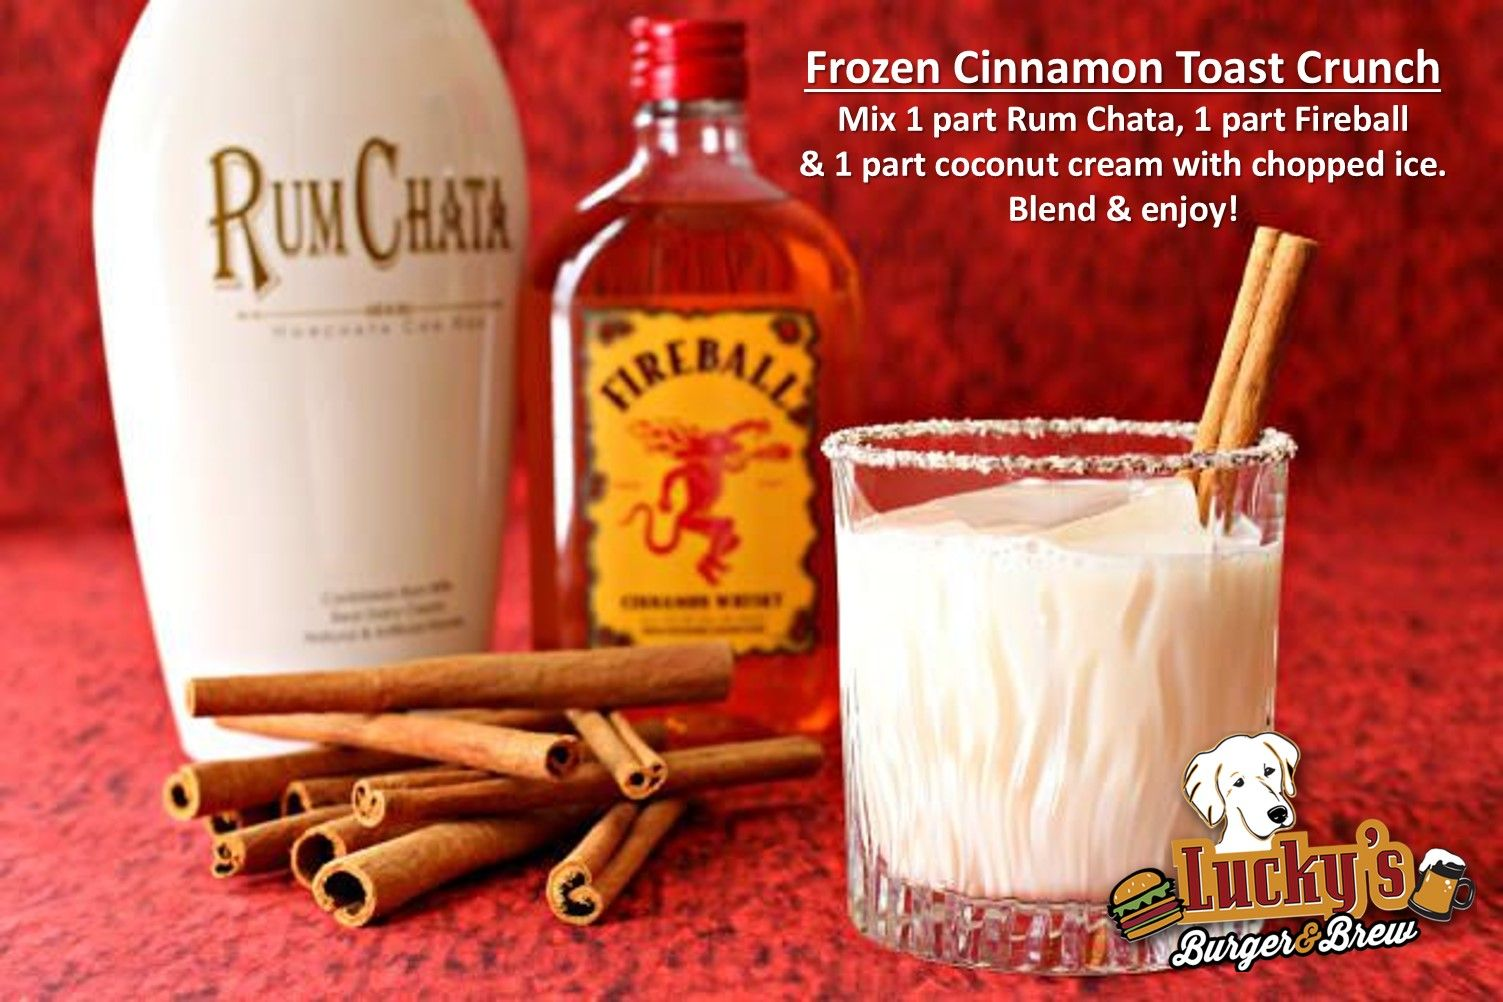 While You Re Stuck Inside Tonight Try Making This Yummy Frozencinnamontoastcrunch Drink Recipe Blend Cinnamon Toast Crunch Cinnamon Toast Savory Experiments